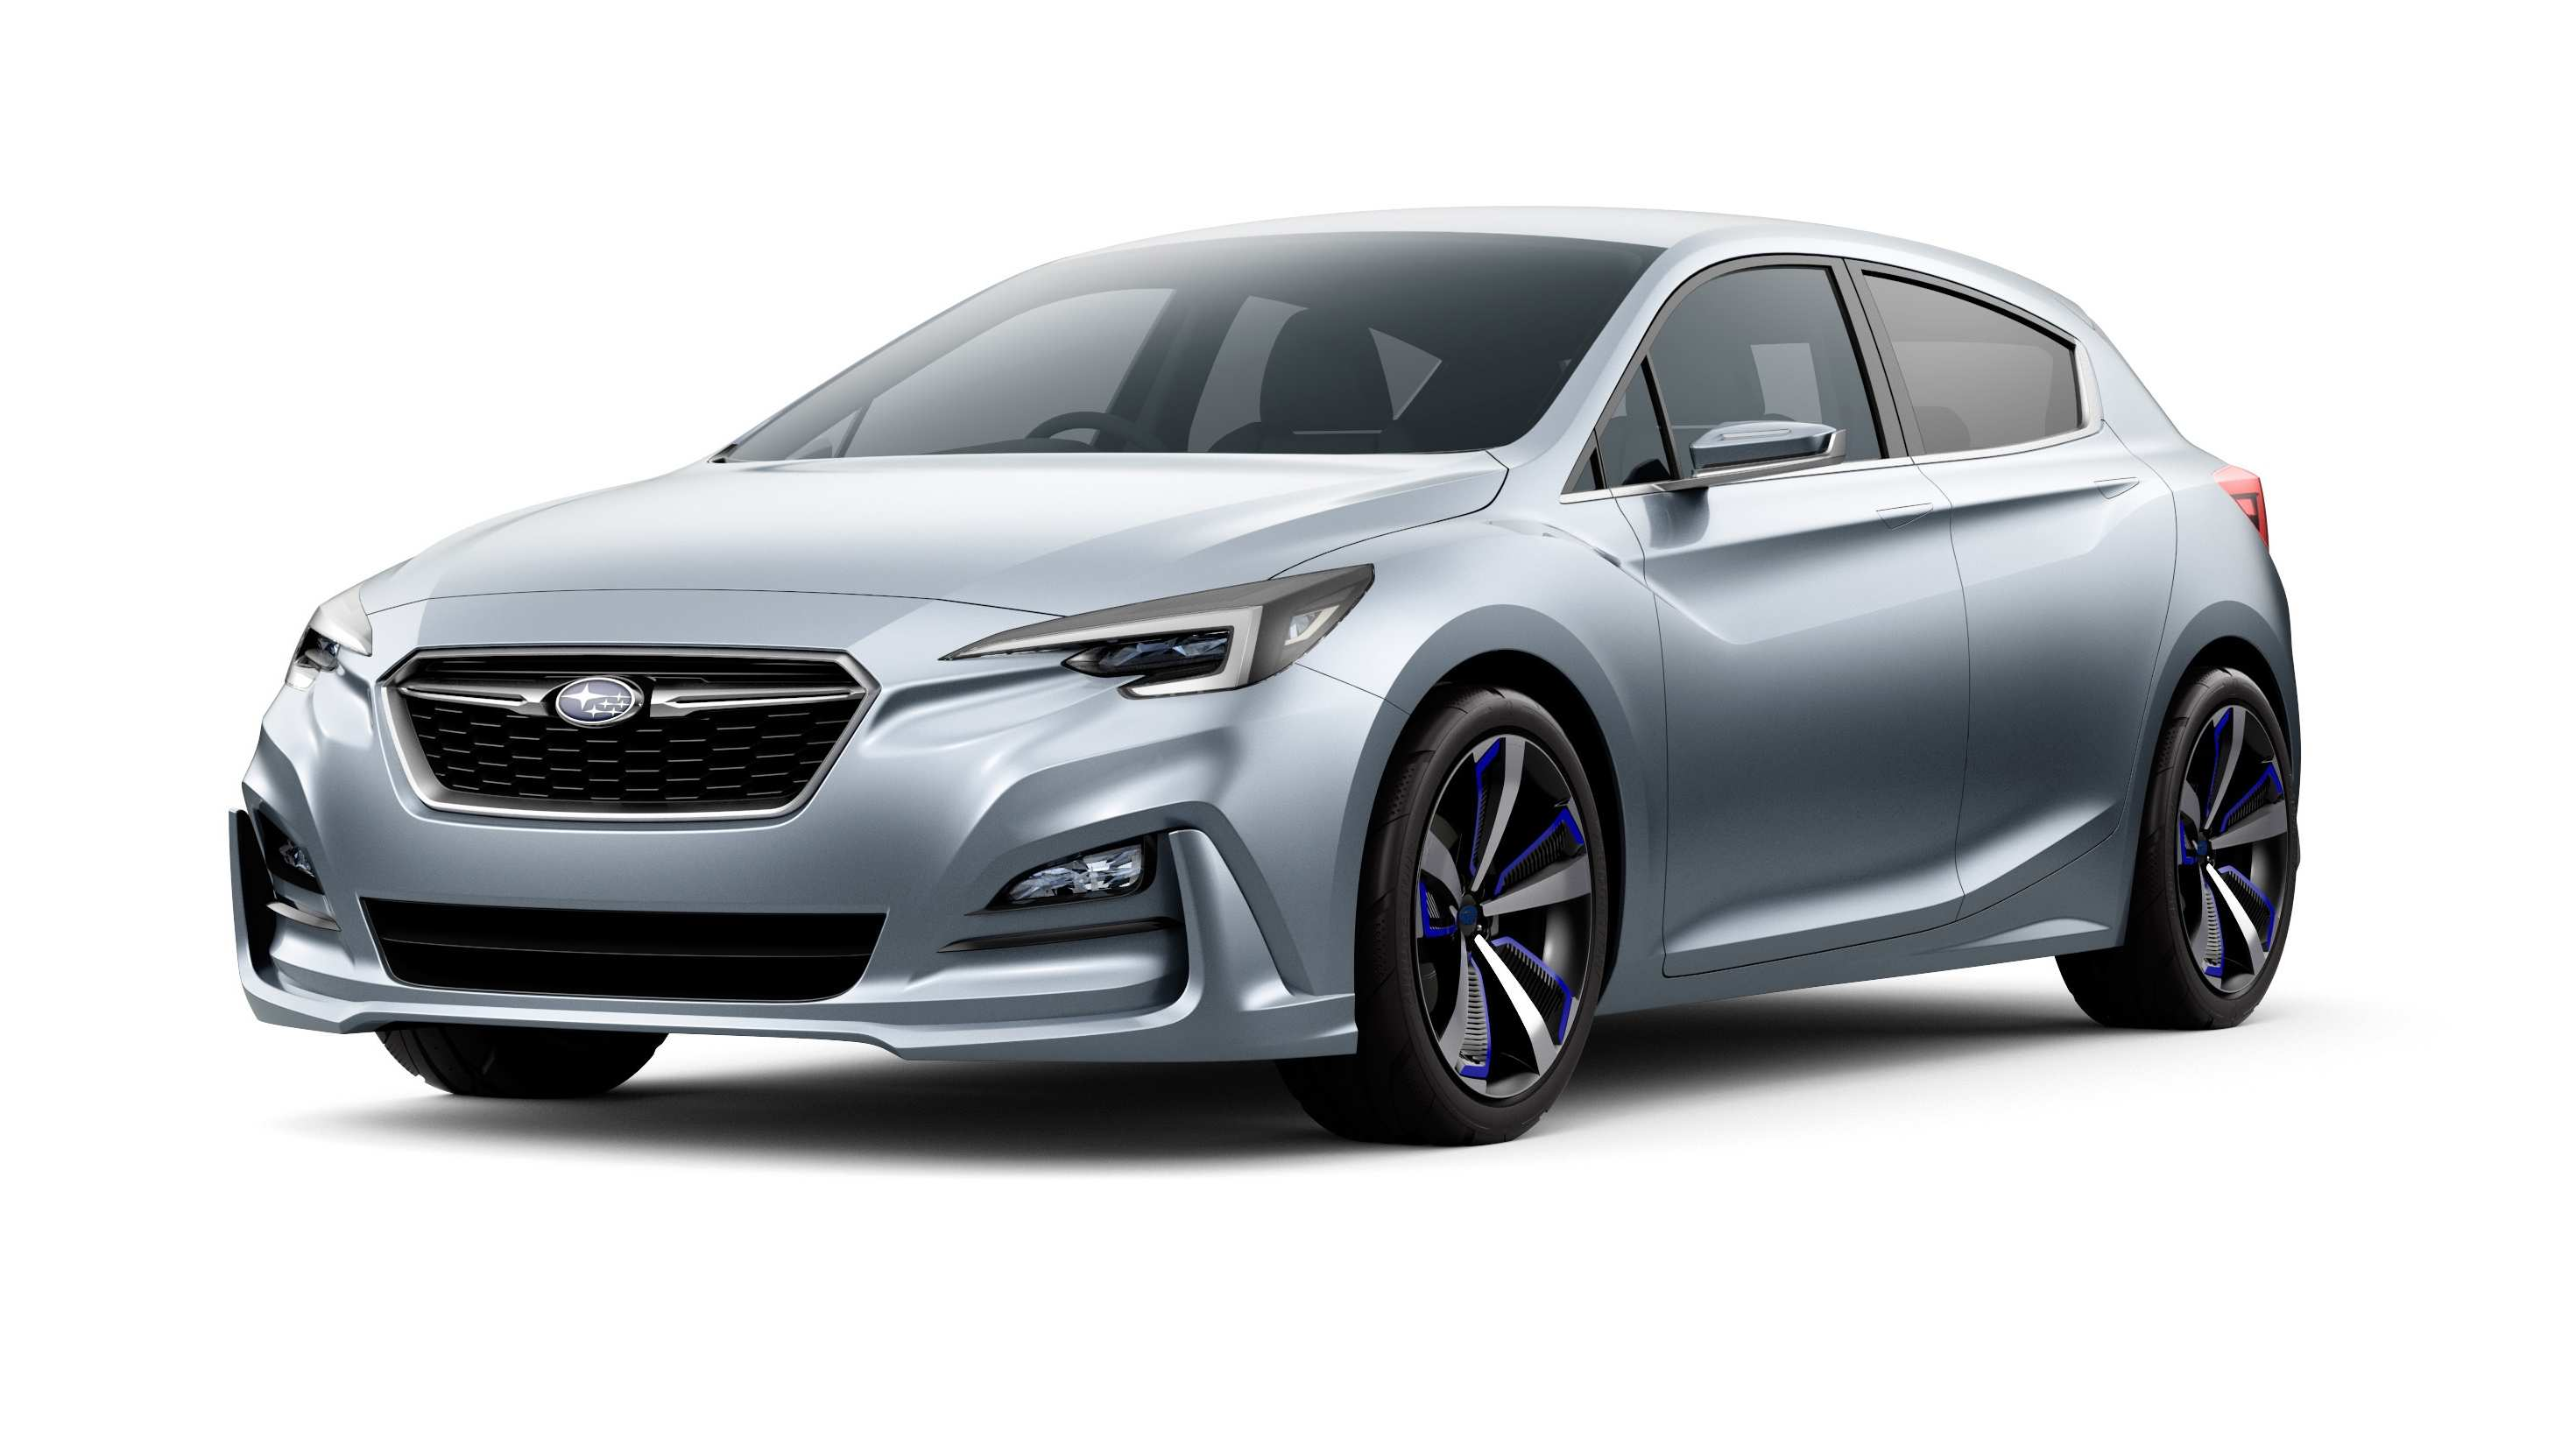 31 Best Review Subaru Cars 2020 Configurations for Subaru Cars 2020